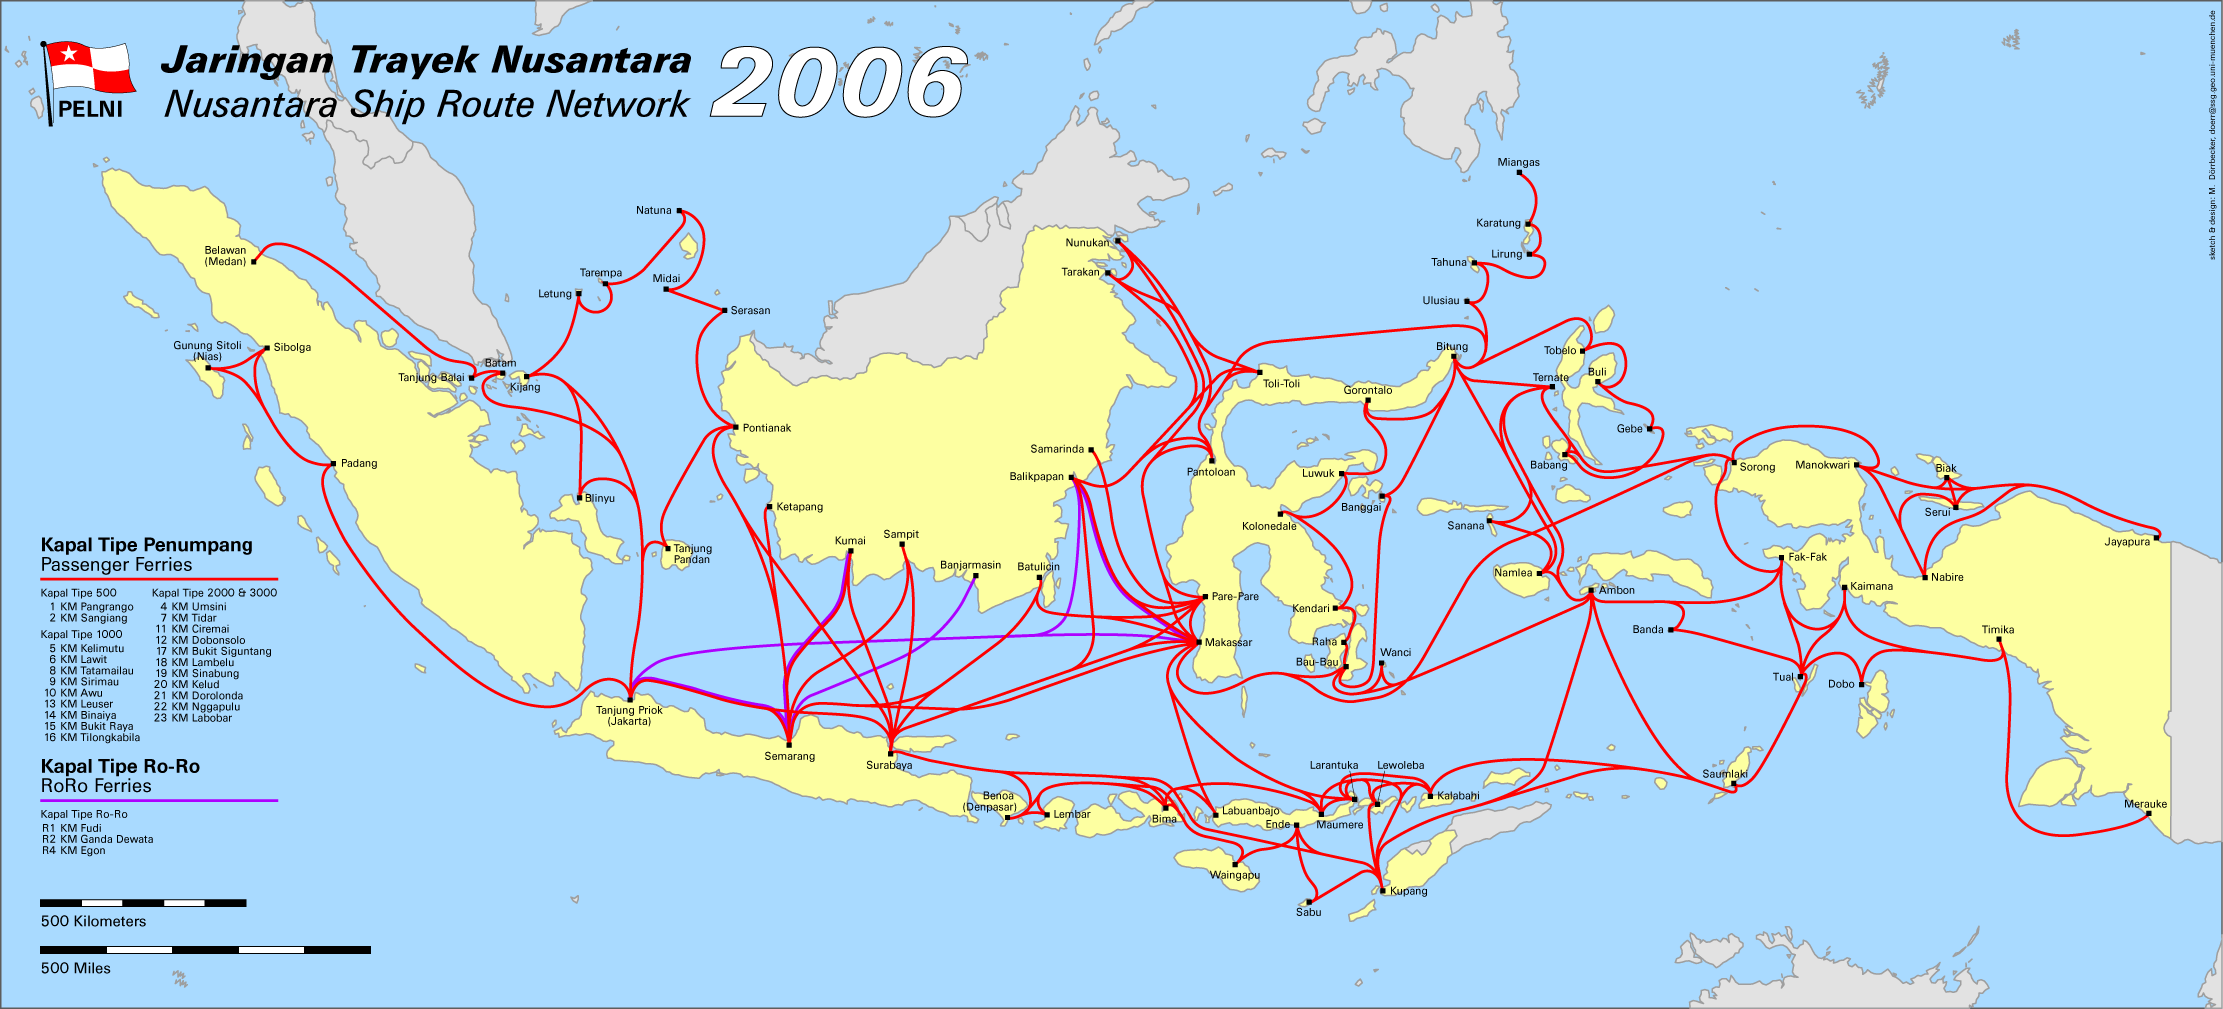 Train travel in indonesia trains jakarta surabaya ferry to bali this penli ferry route map gumiabroncs